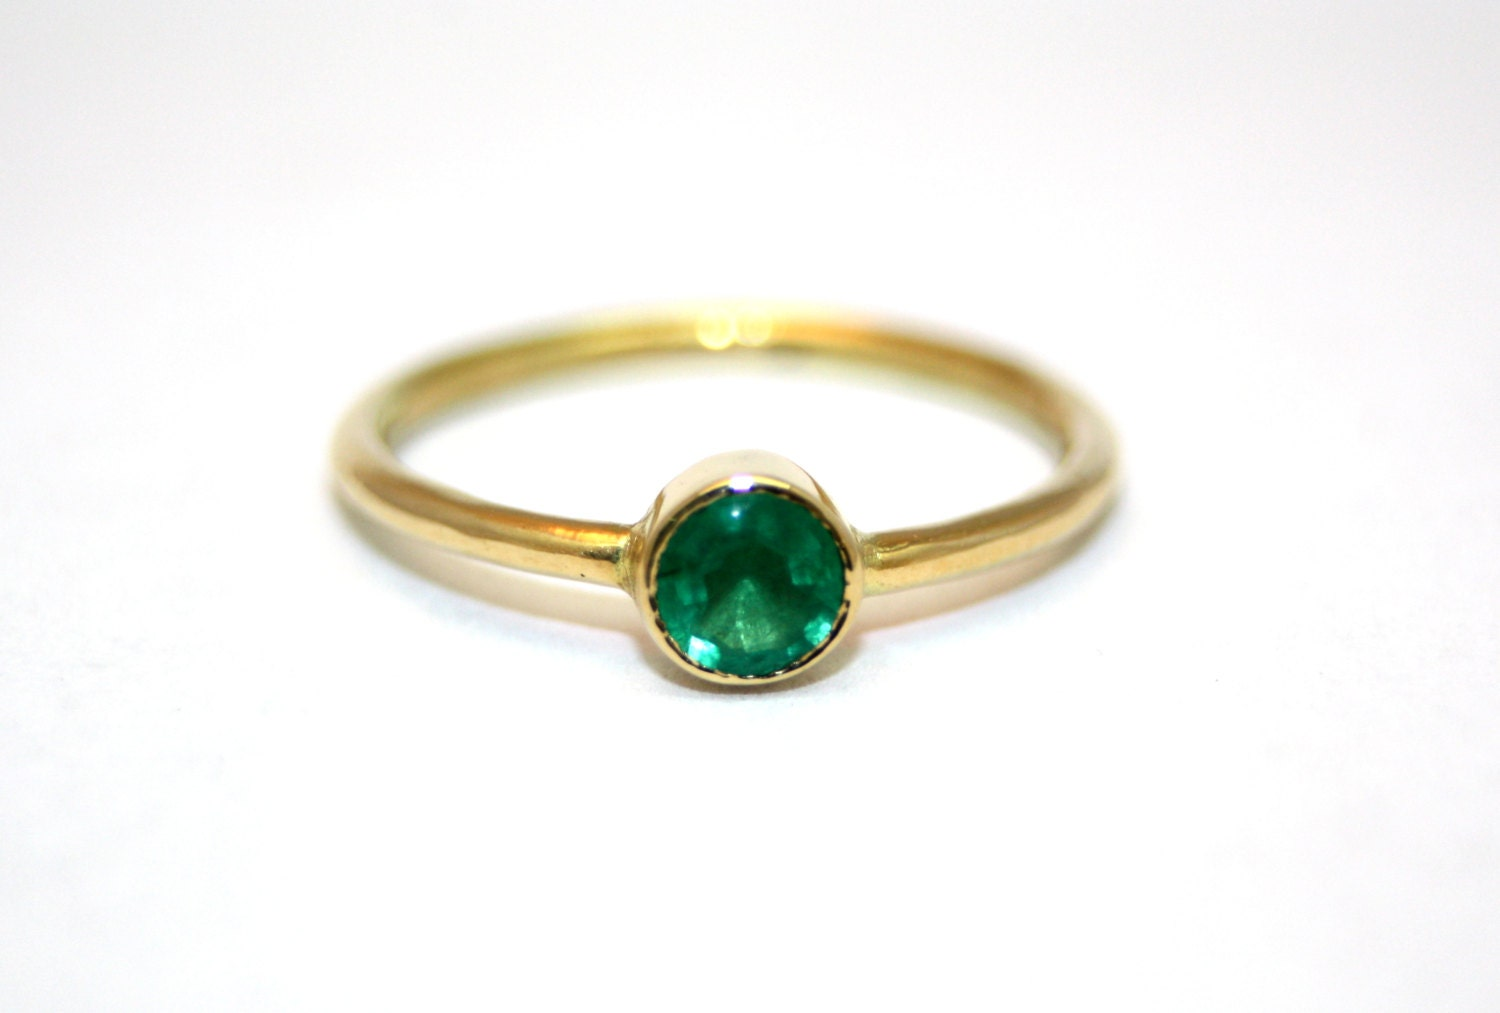 emerald ring simple gold ring delicate by alonijewelry